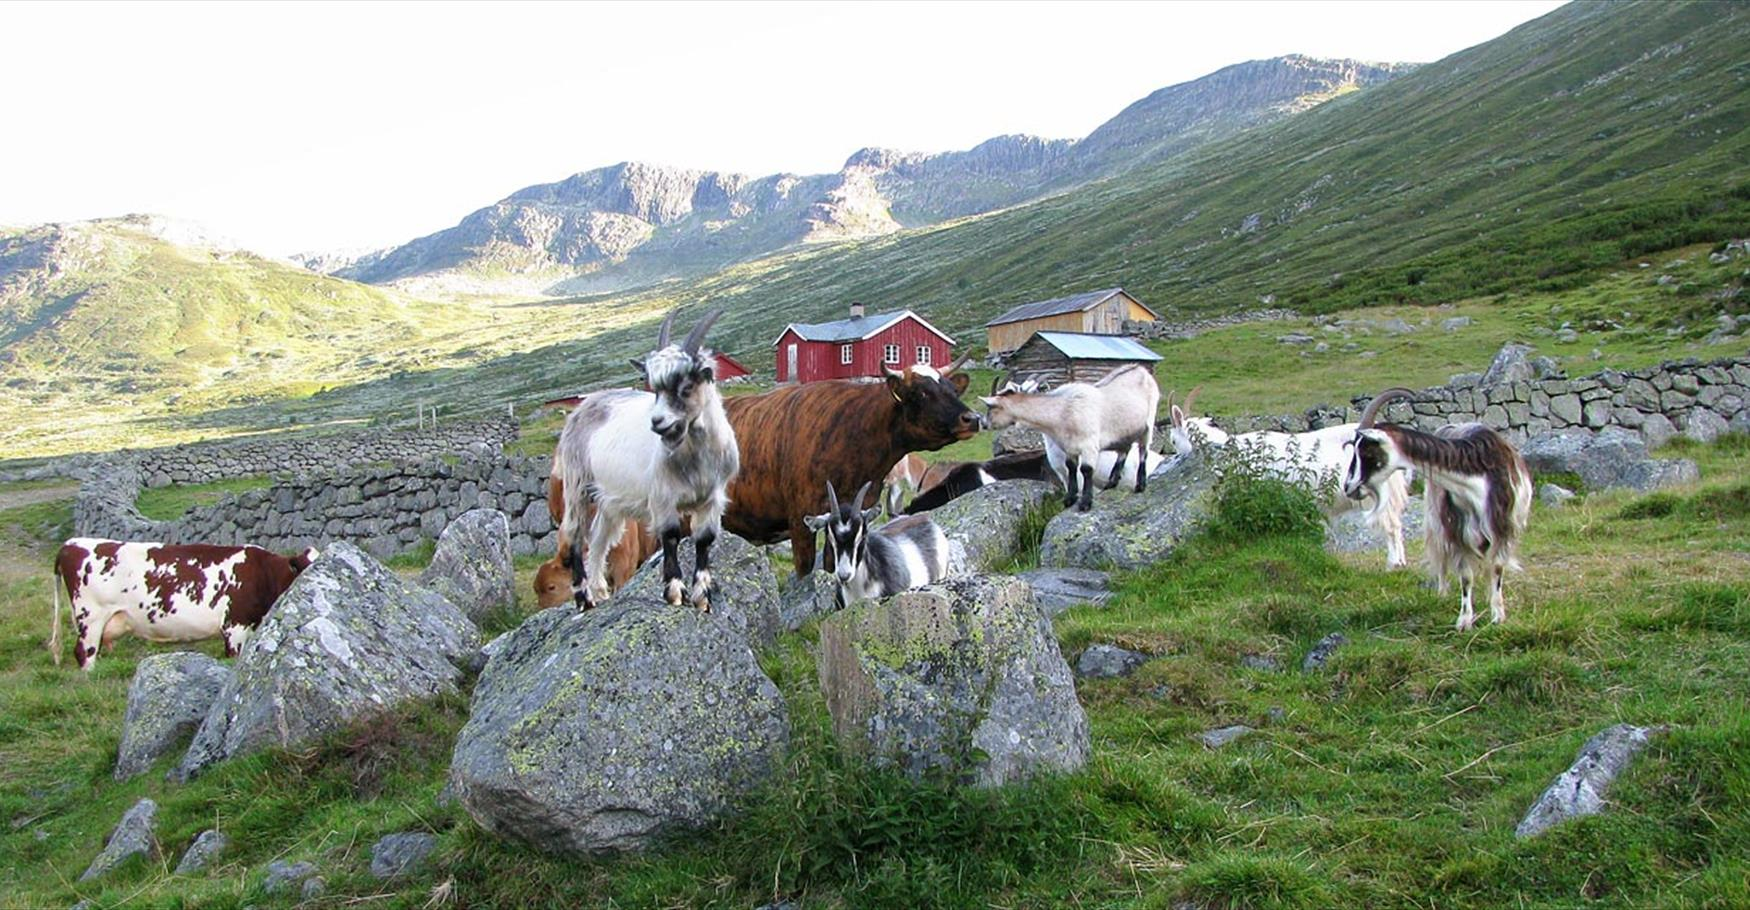 Farm animals grazing in the Sanddalen Valley.